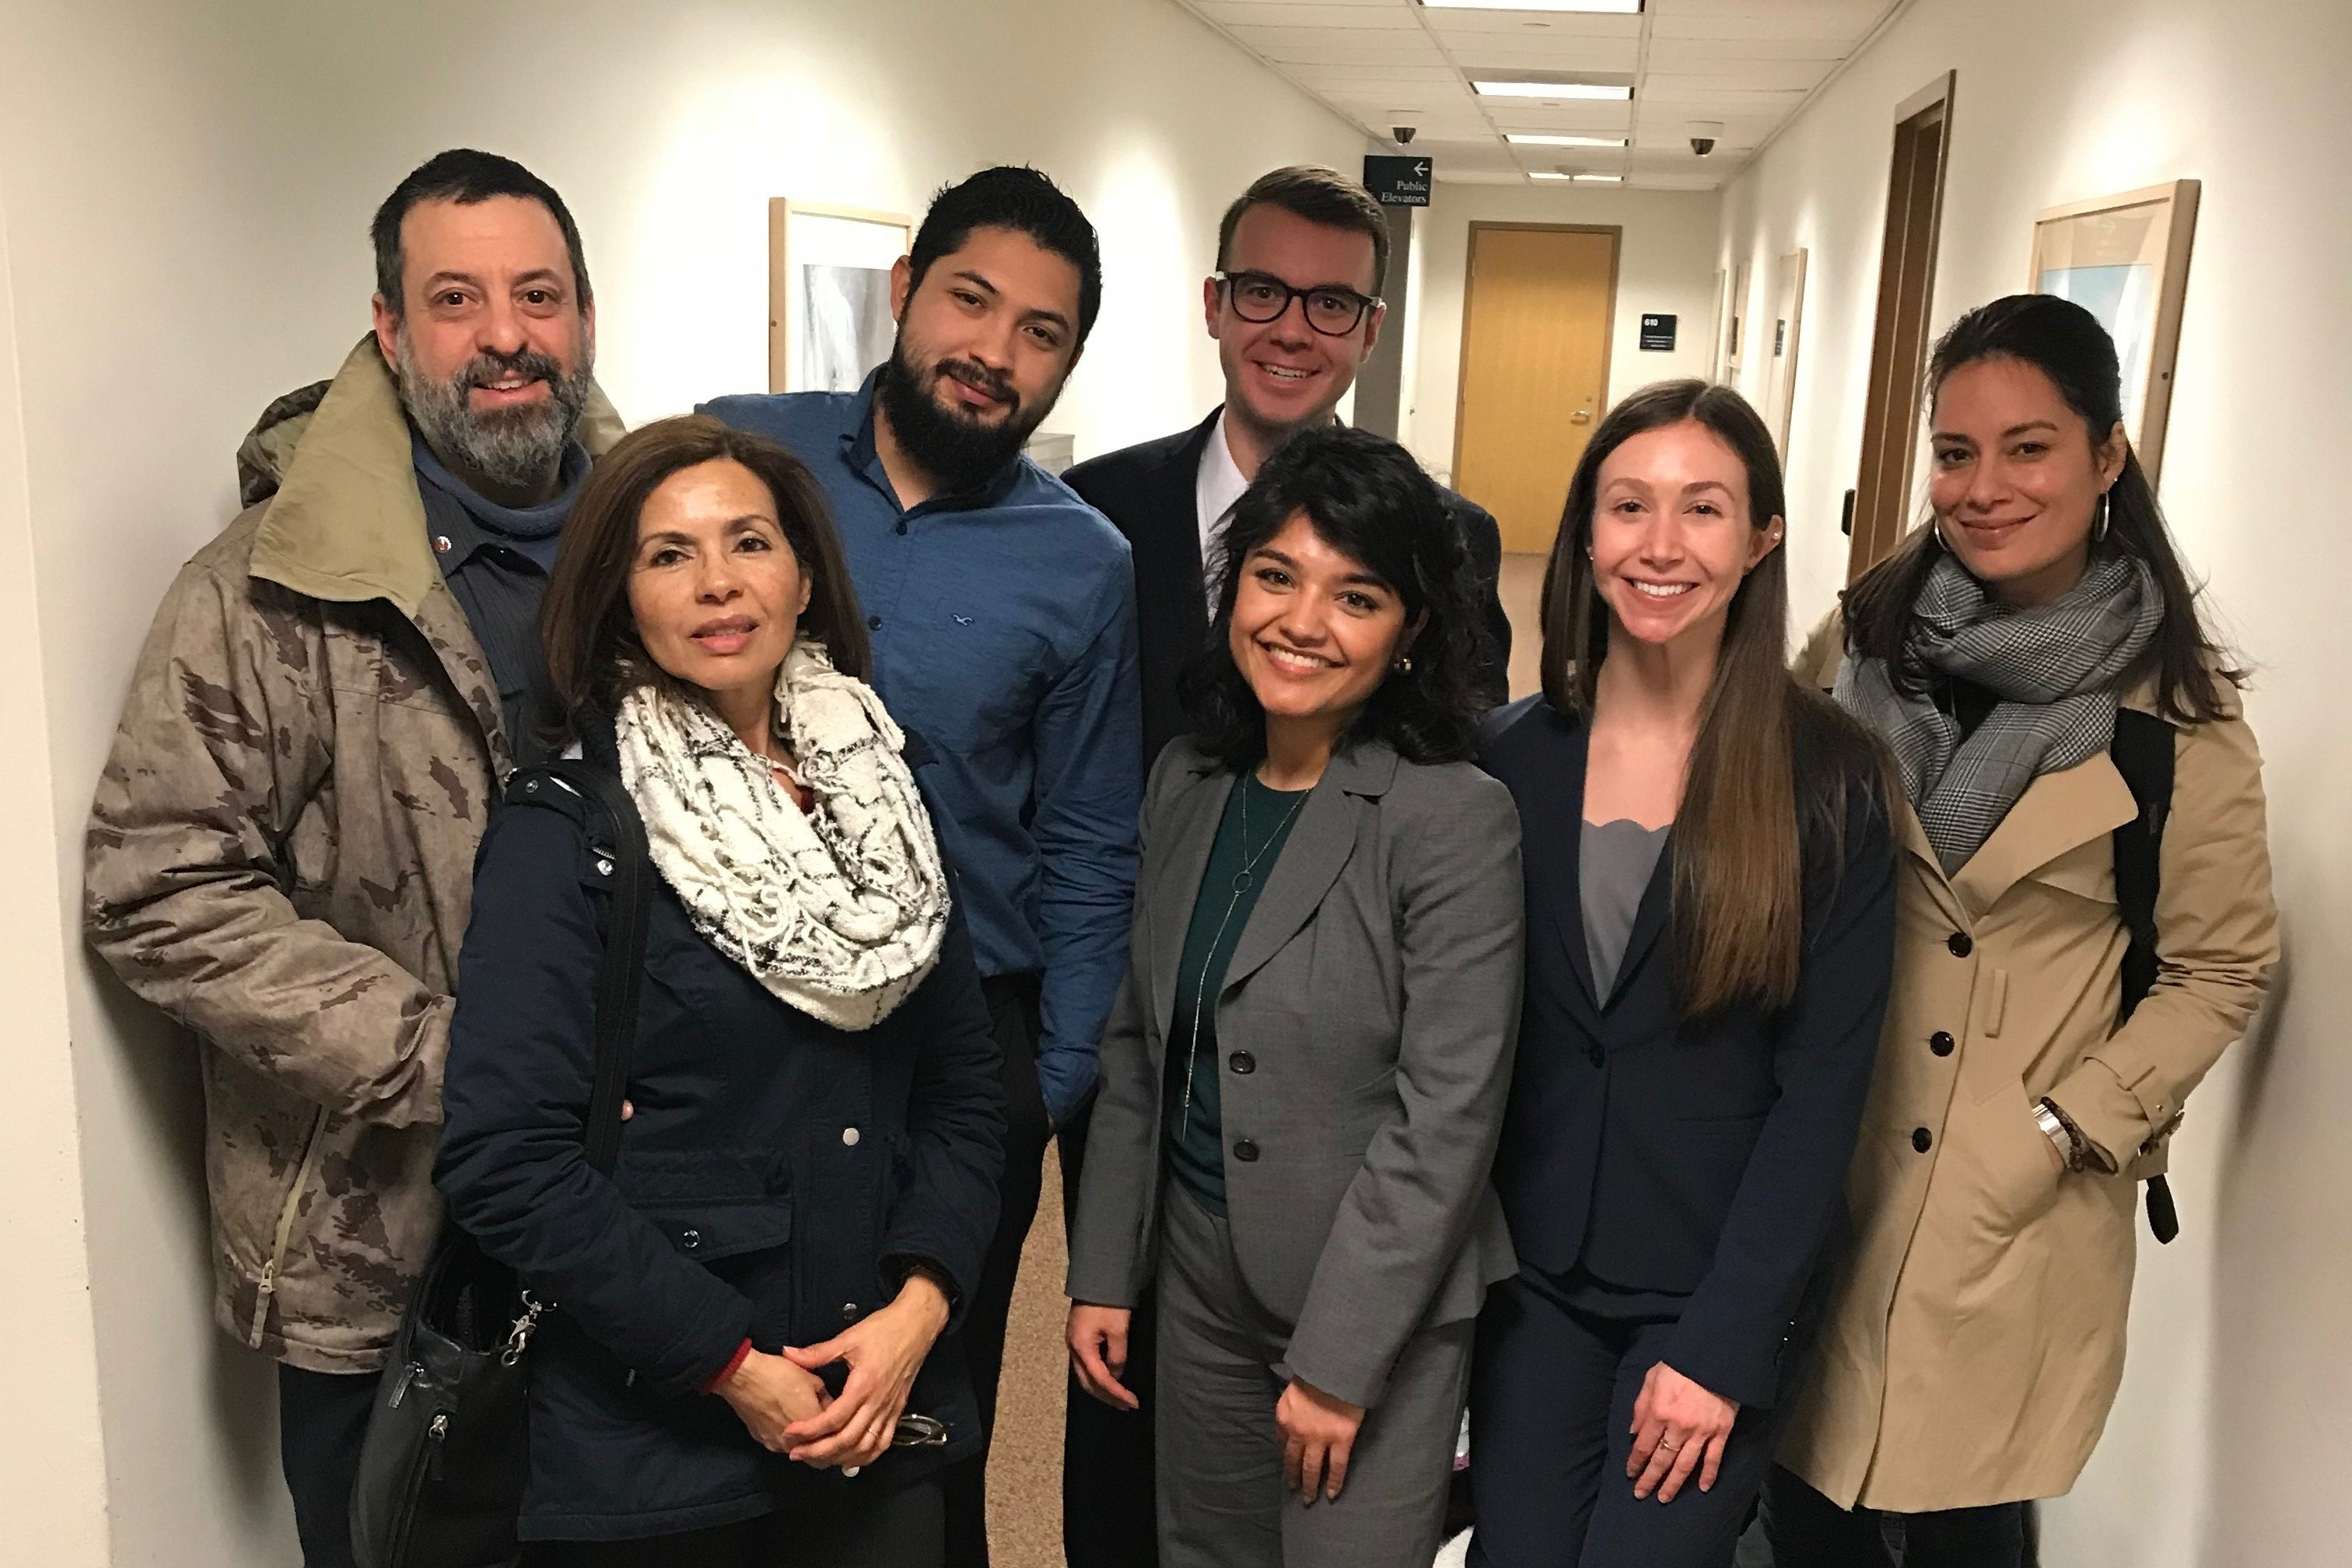 Left to right, two members of the Galdamez family; Franklin René Ruano Galdamez; Adam Kuegler (back) law student; Valeria Gomez, William R. Davis Clinical Fellow at UConn Law; Alexandria Madjeric, law student; and Thais Ortolaza, UConn School of Social Work student intern. (Camille Chill/UConn Photo)